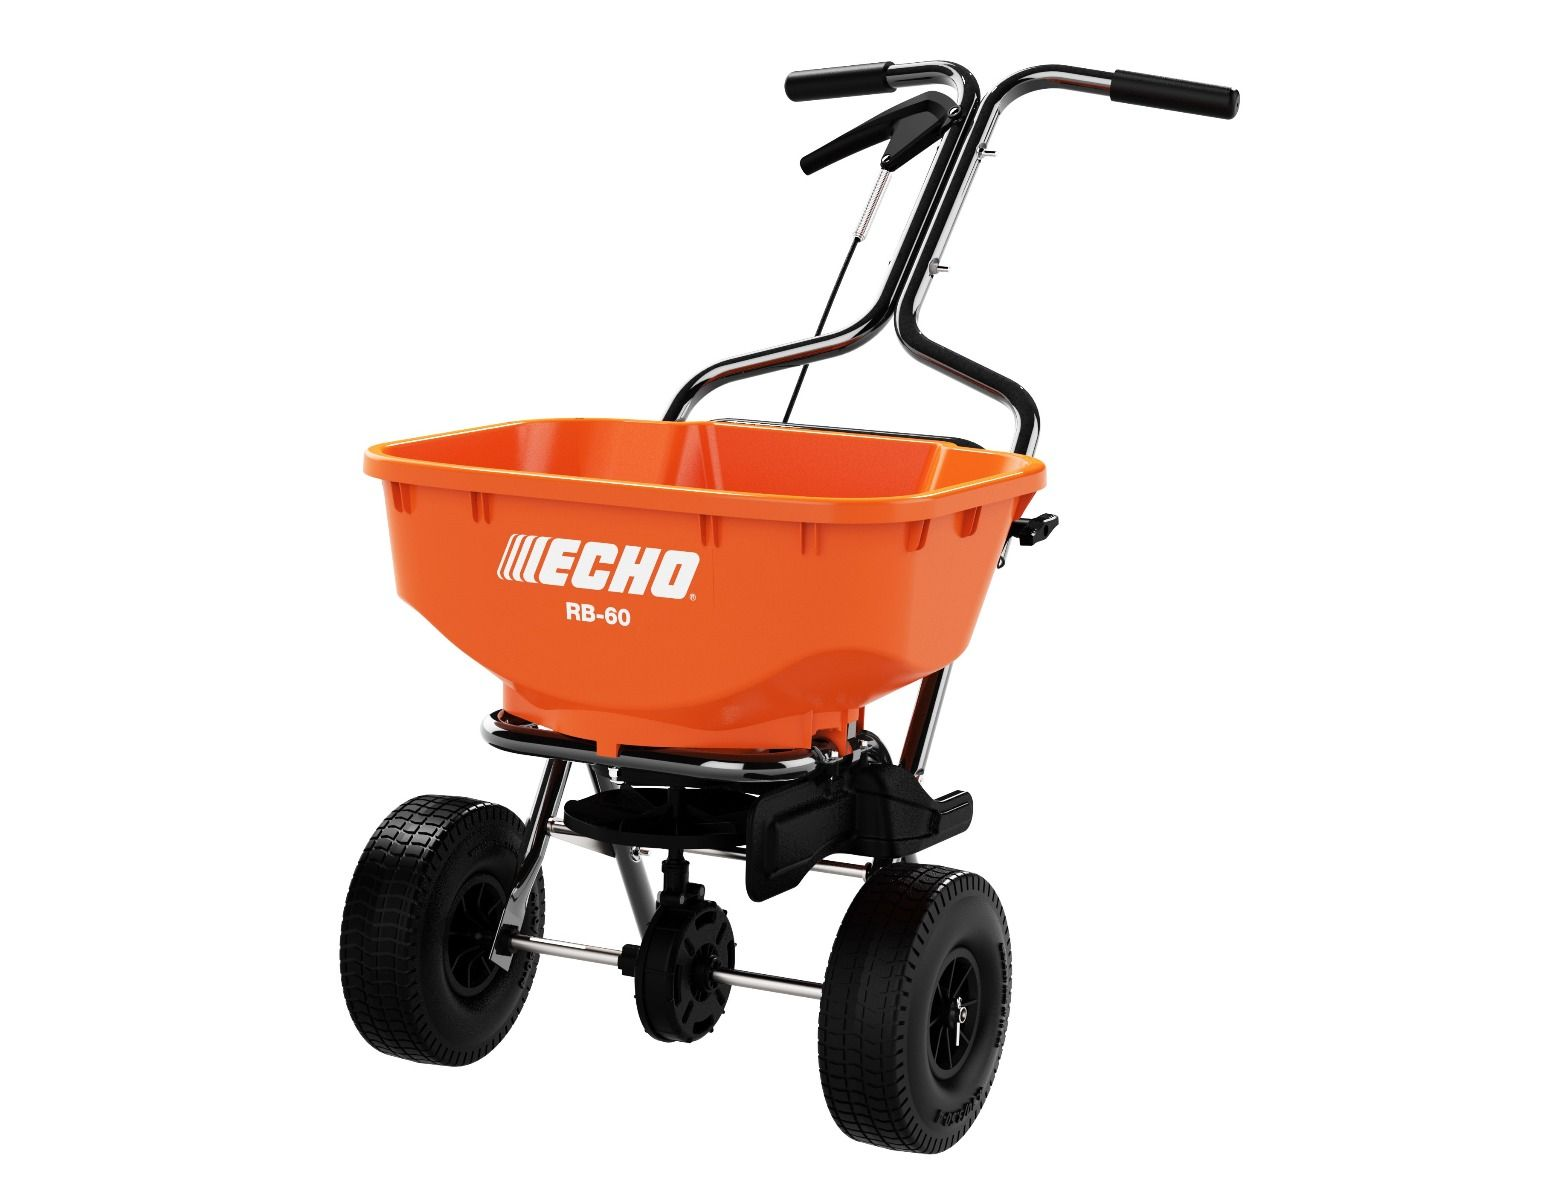 ECHO RB 60 Turf Spreader